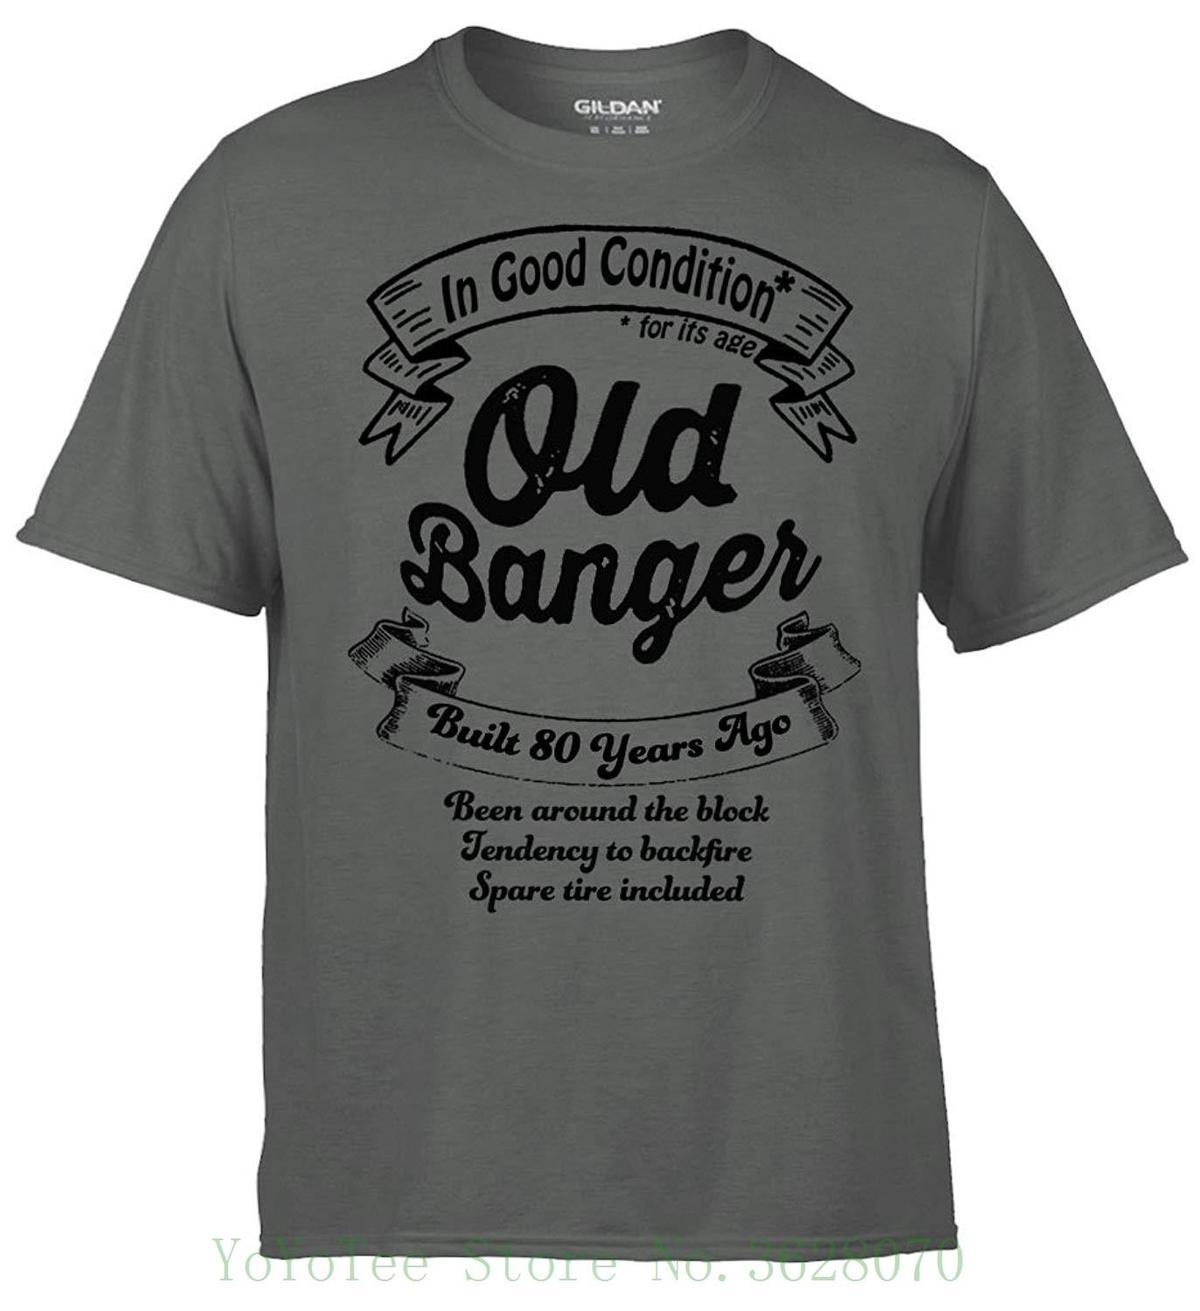 Brandevo 80th Birthday Mens T Shirt Old Banger Charcoal Grey Fun Quality Present MenS O Neck Printed Tee Interesting Shirts Shop For